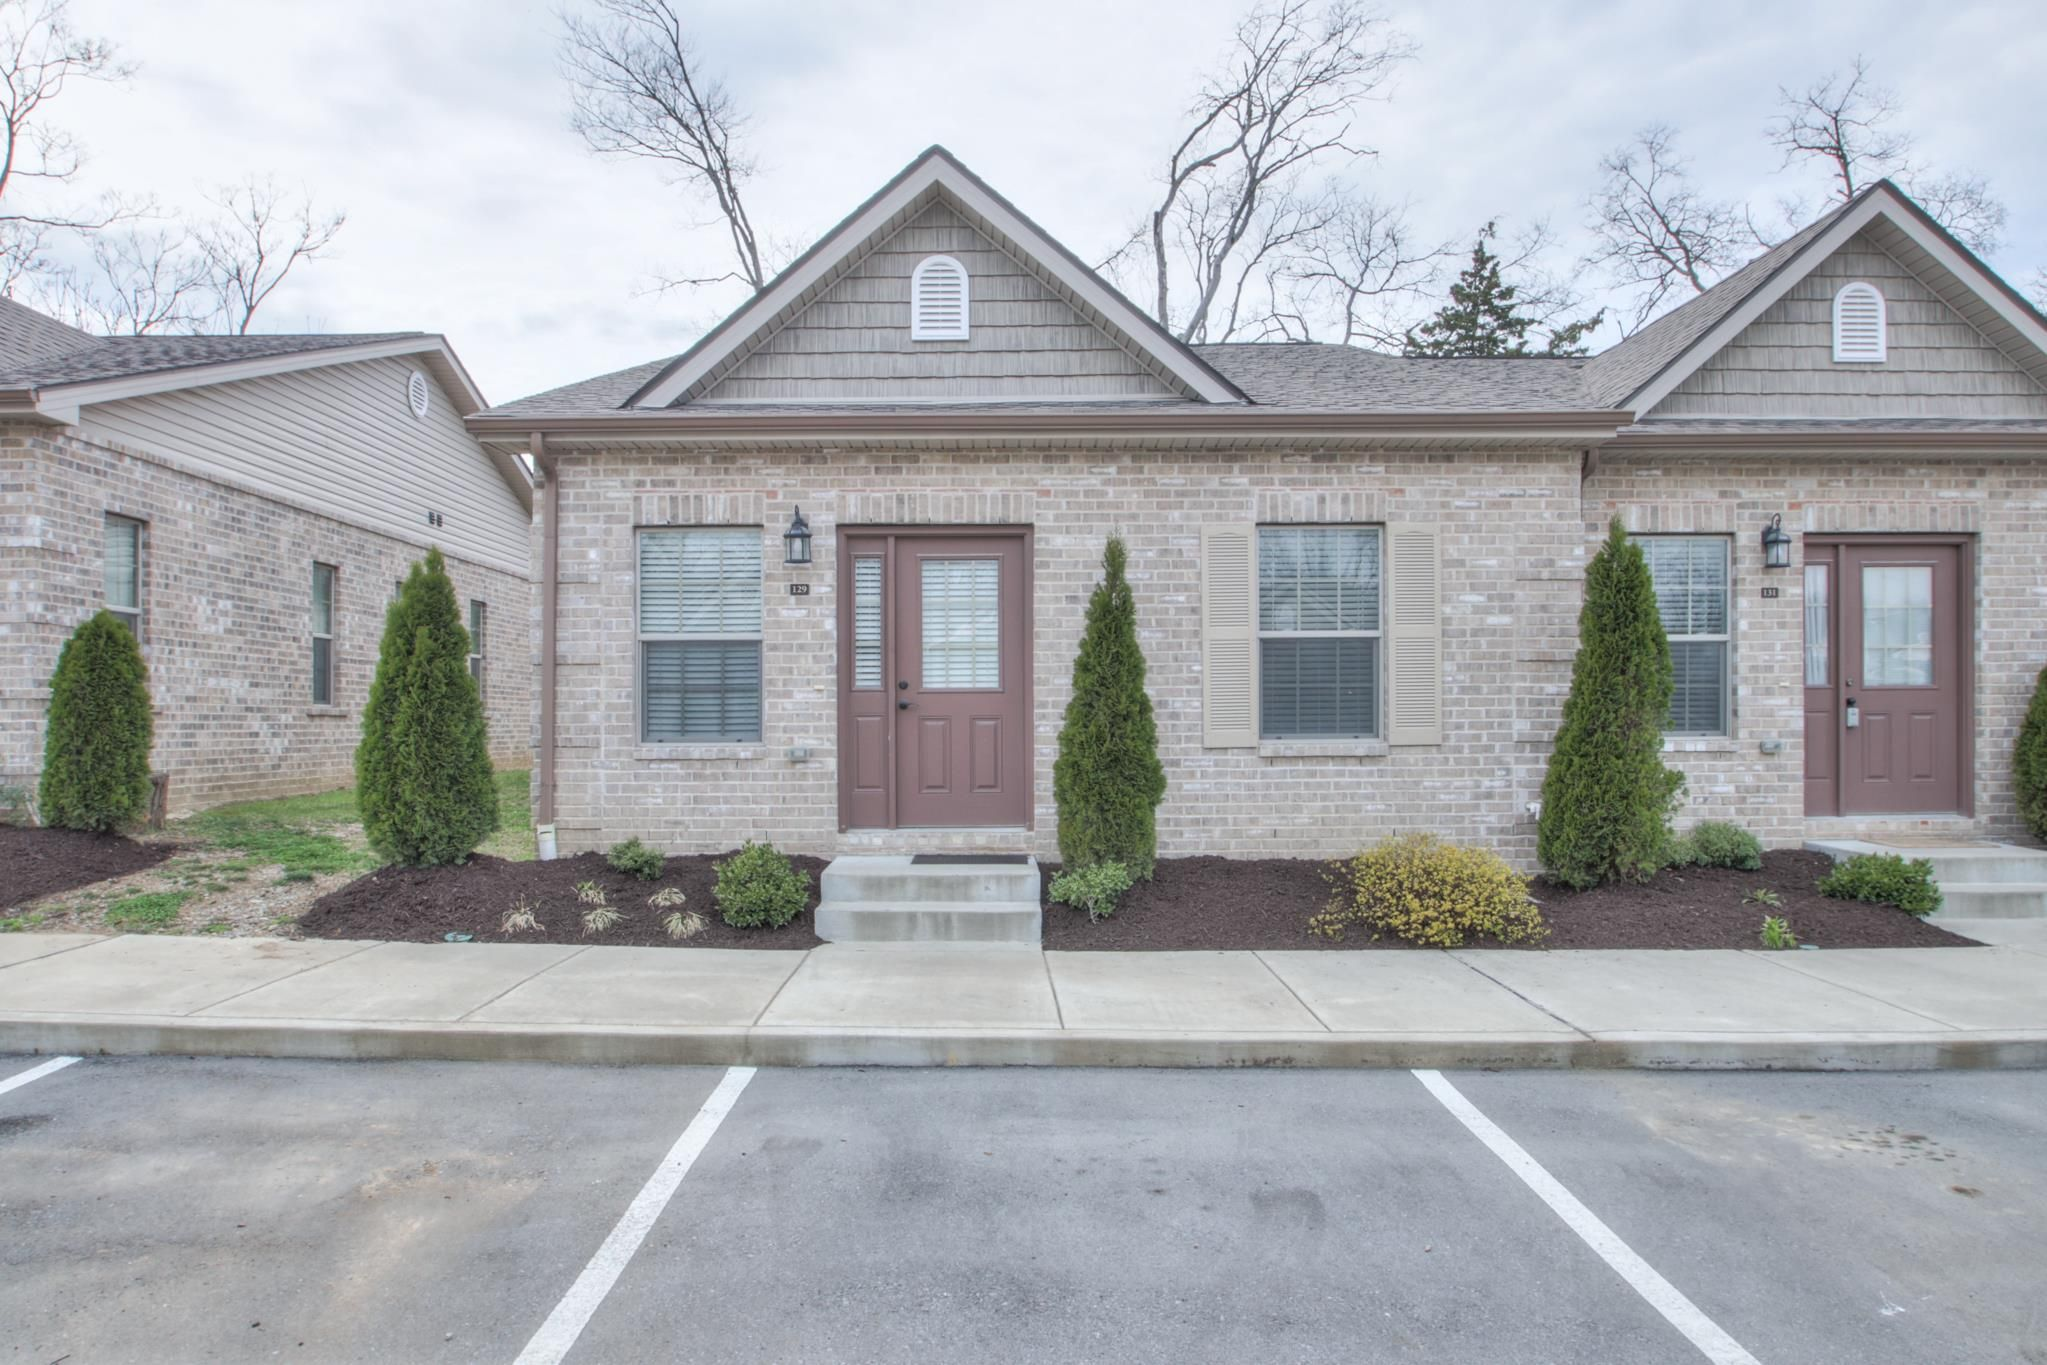 129 Velena St Franklin Tn 37064 2 Bed 2 Bath 253 500 Small Enclave Of 1 L House Prices First Time Home Buyers Home